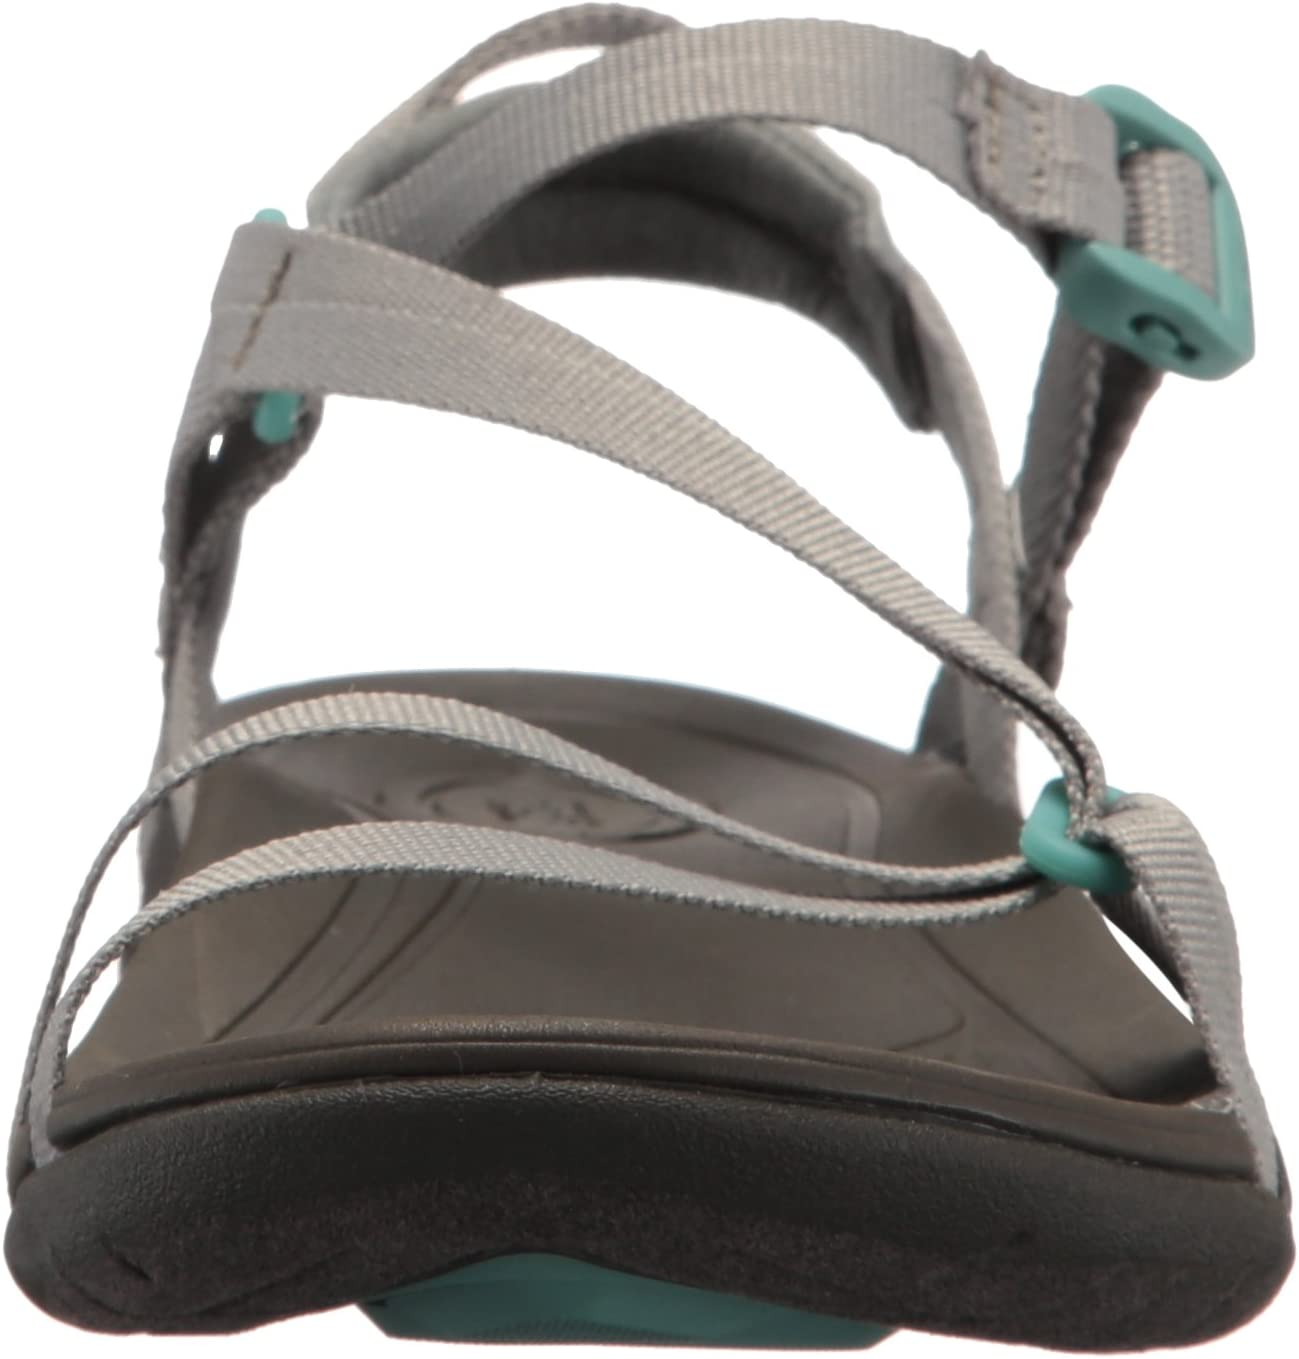 Teva Women's SIRRA Open Toe Athletic & Outdoor Sandals DESERT SAGE